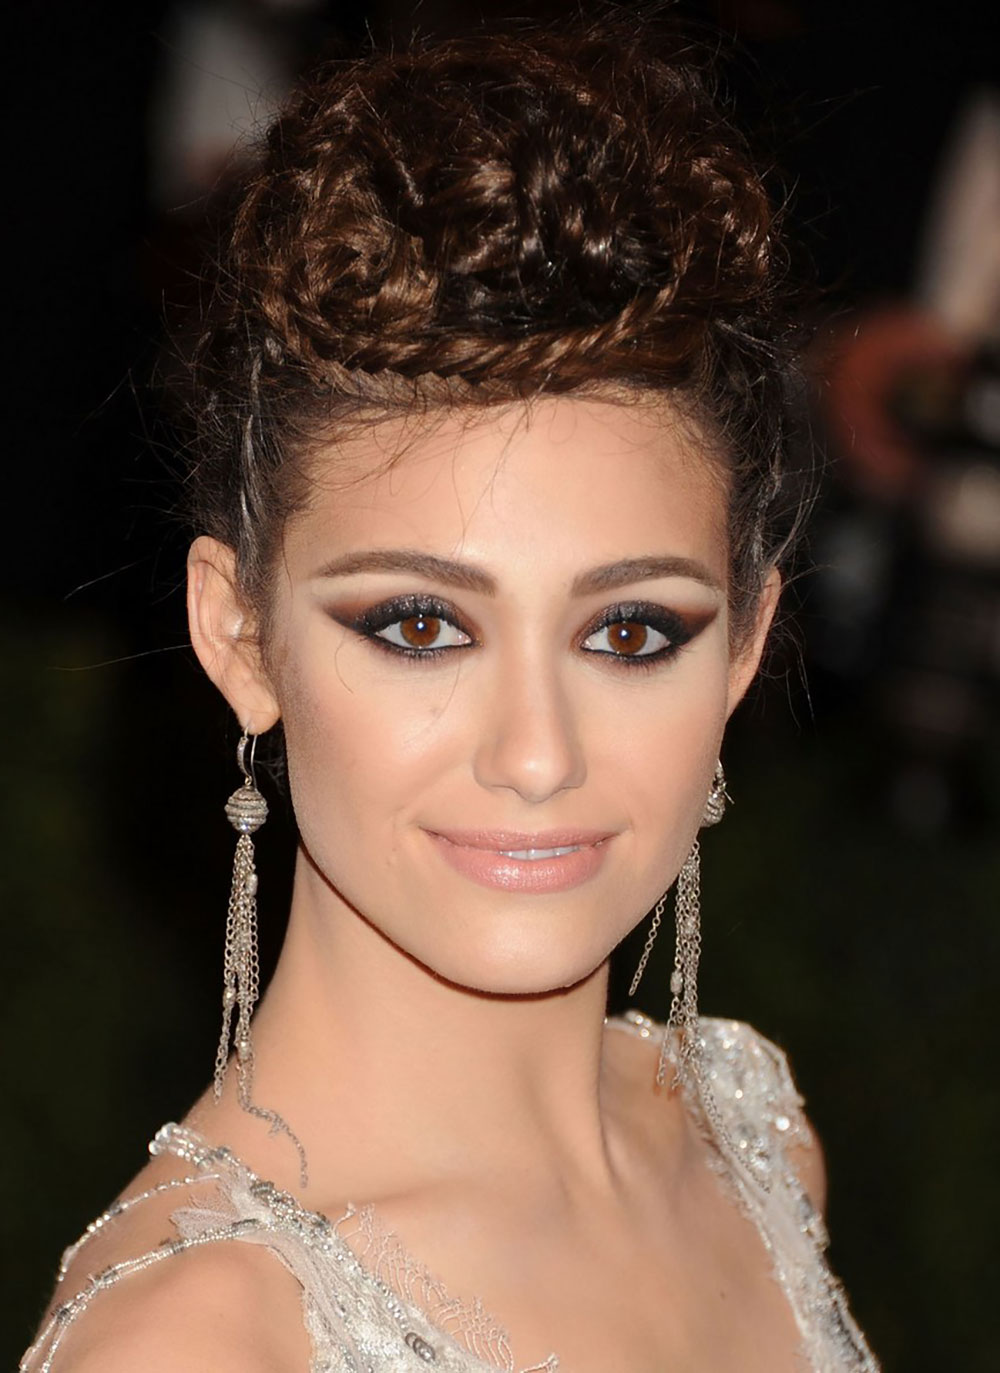 emmy-rossum-smoky-eye-makeup-2013-met-gala